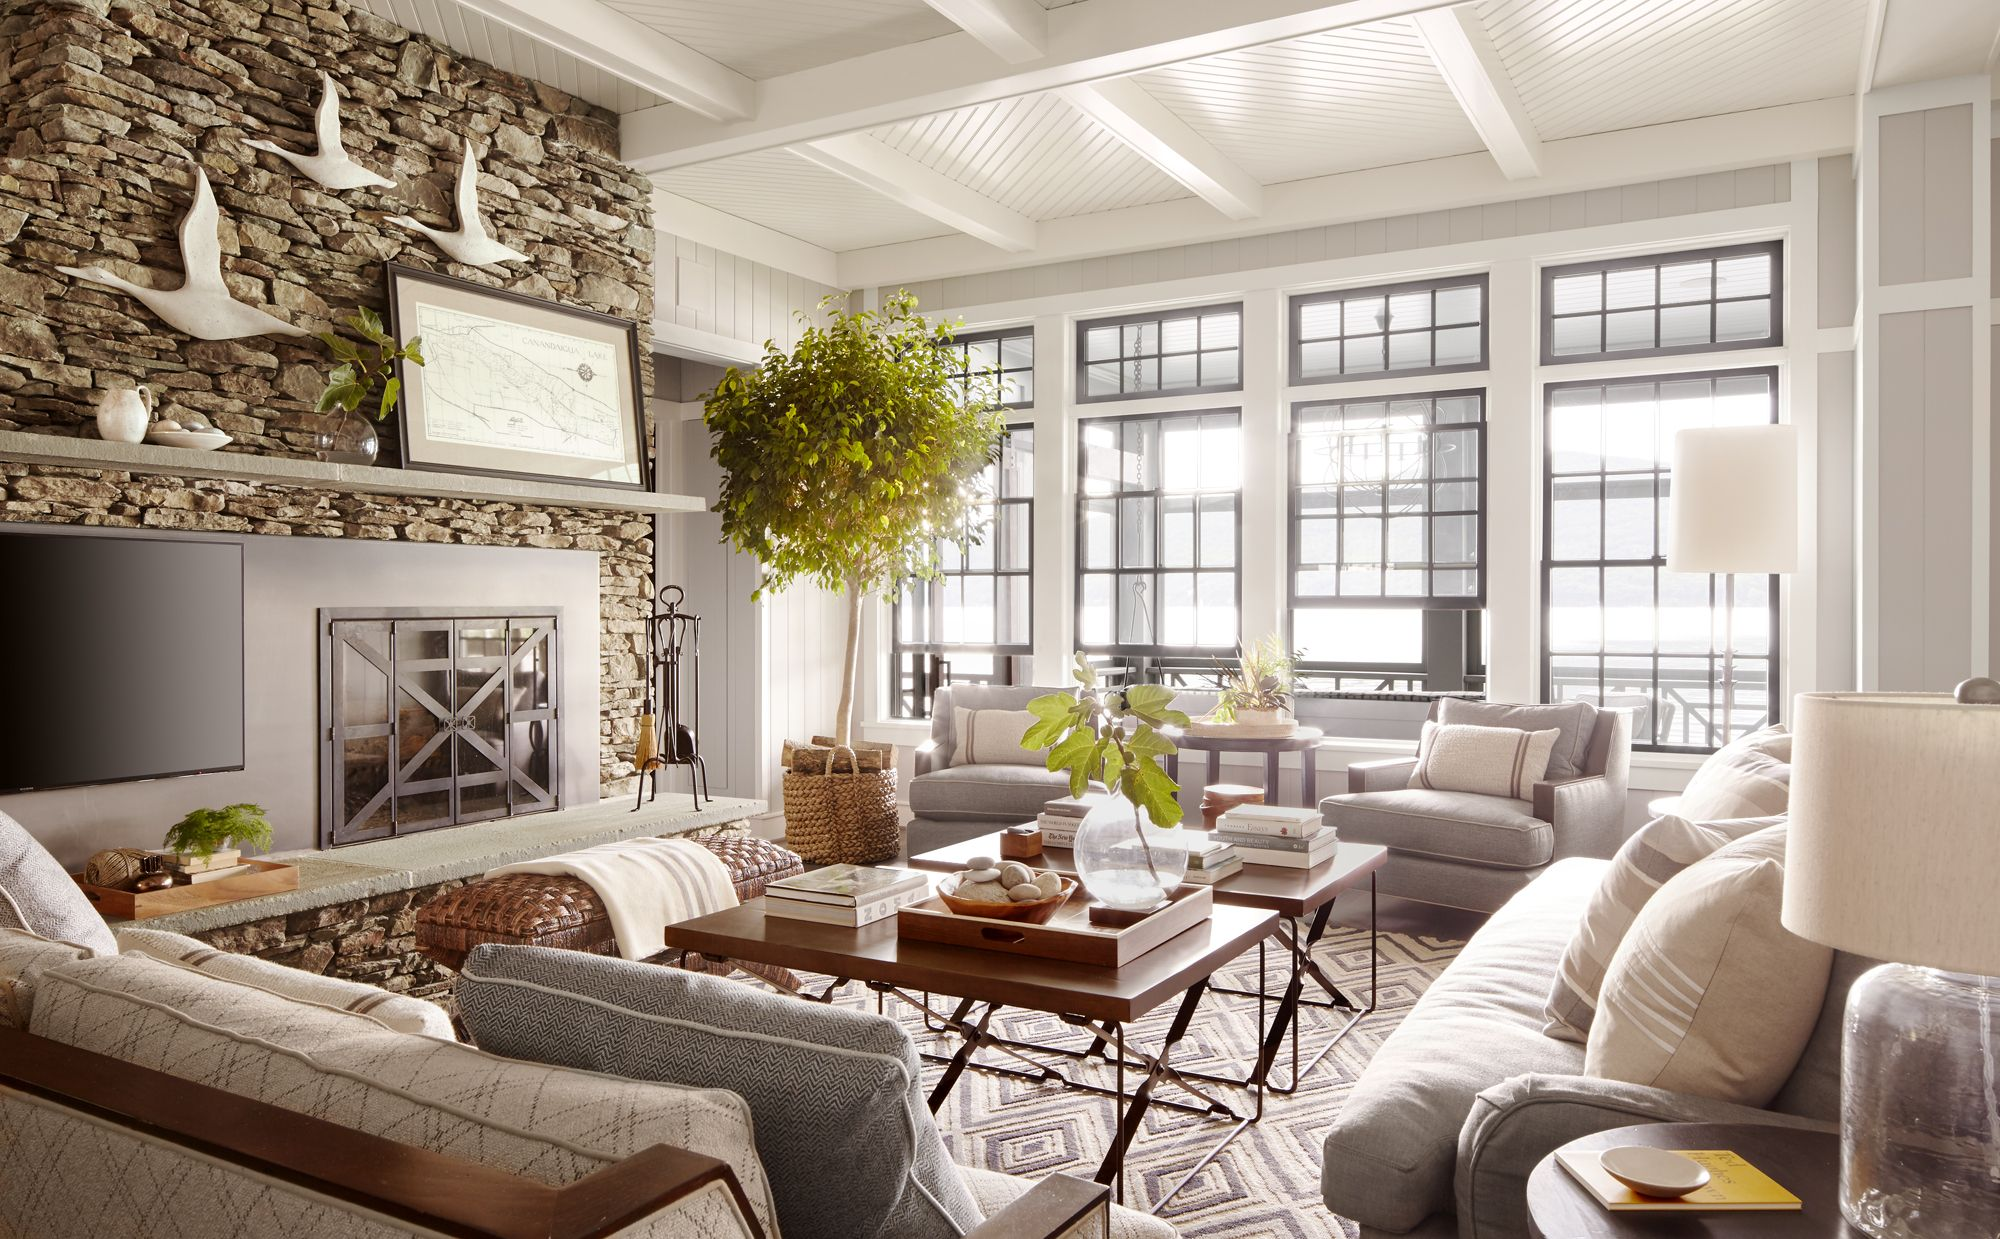 10 Essential Rules For Decorating A Lake House Lake House Furniture Lake House Interior Rustic Lake Houses